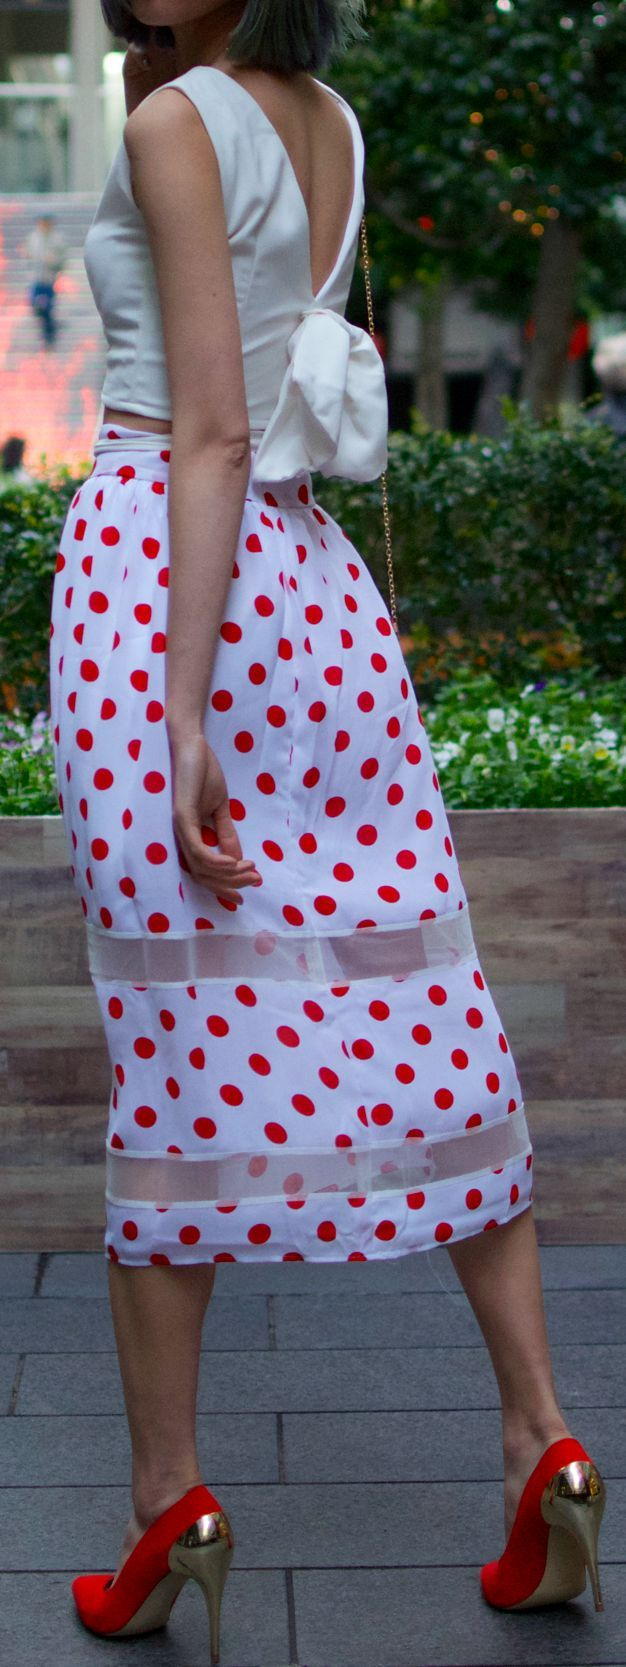 a touch of vintage in this red polka dot midi skirt <3 #love